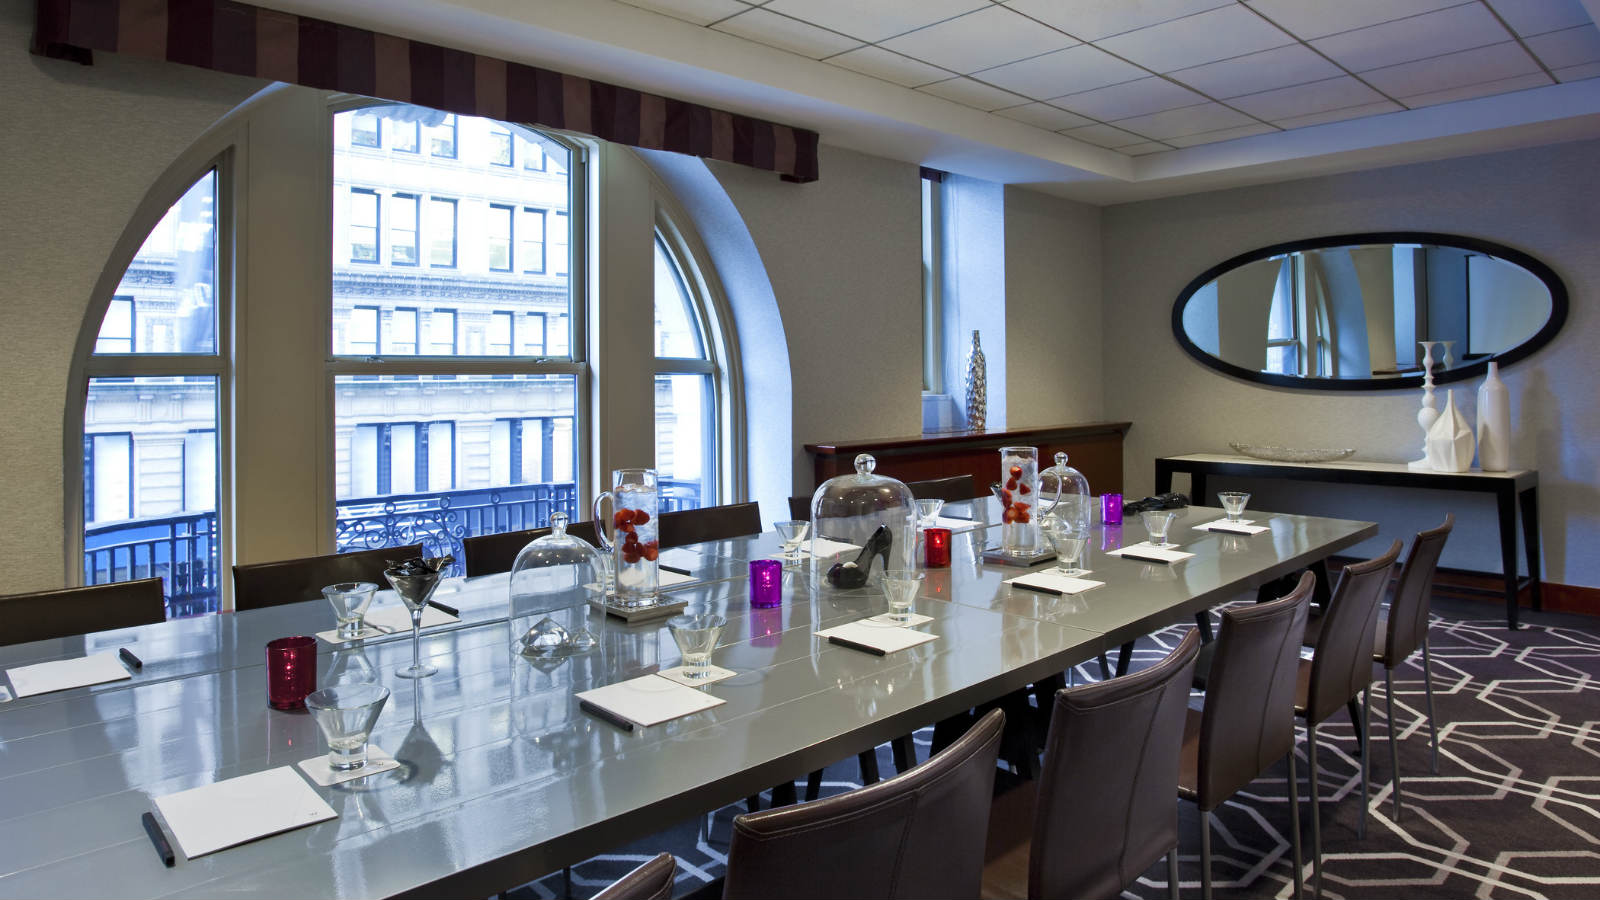 NYC Union Square Meetings and Events - Studio 2